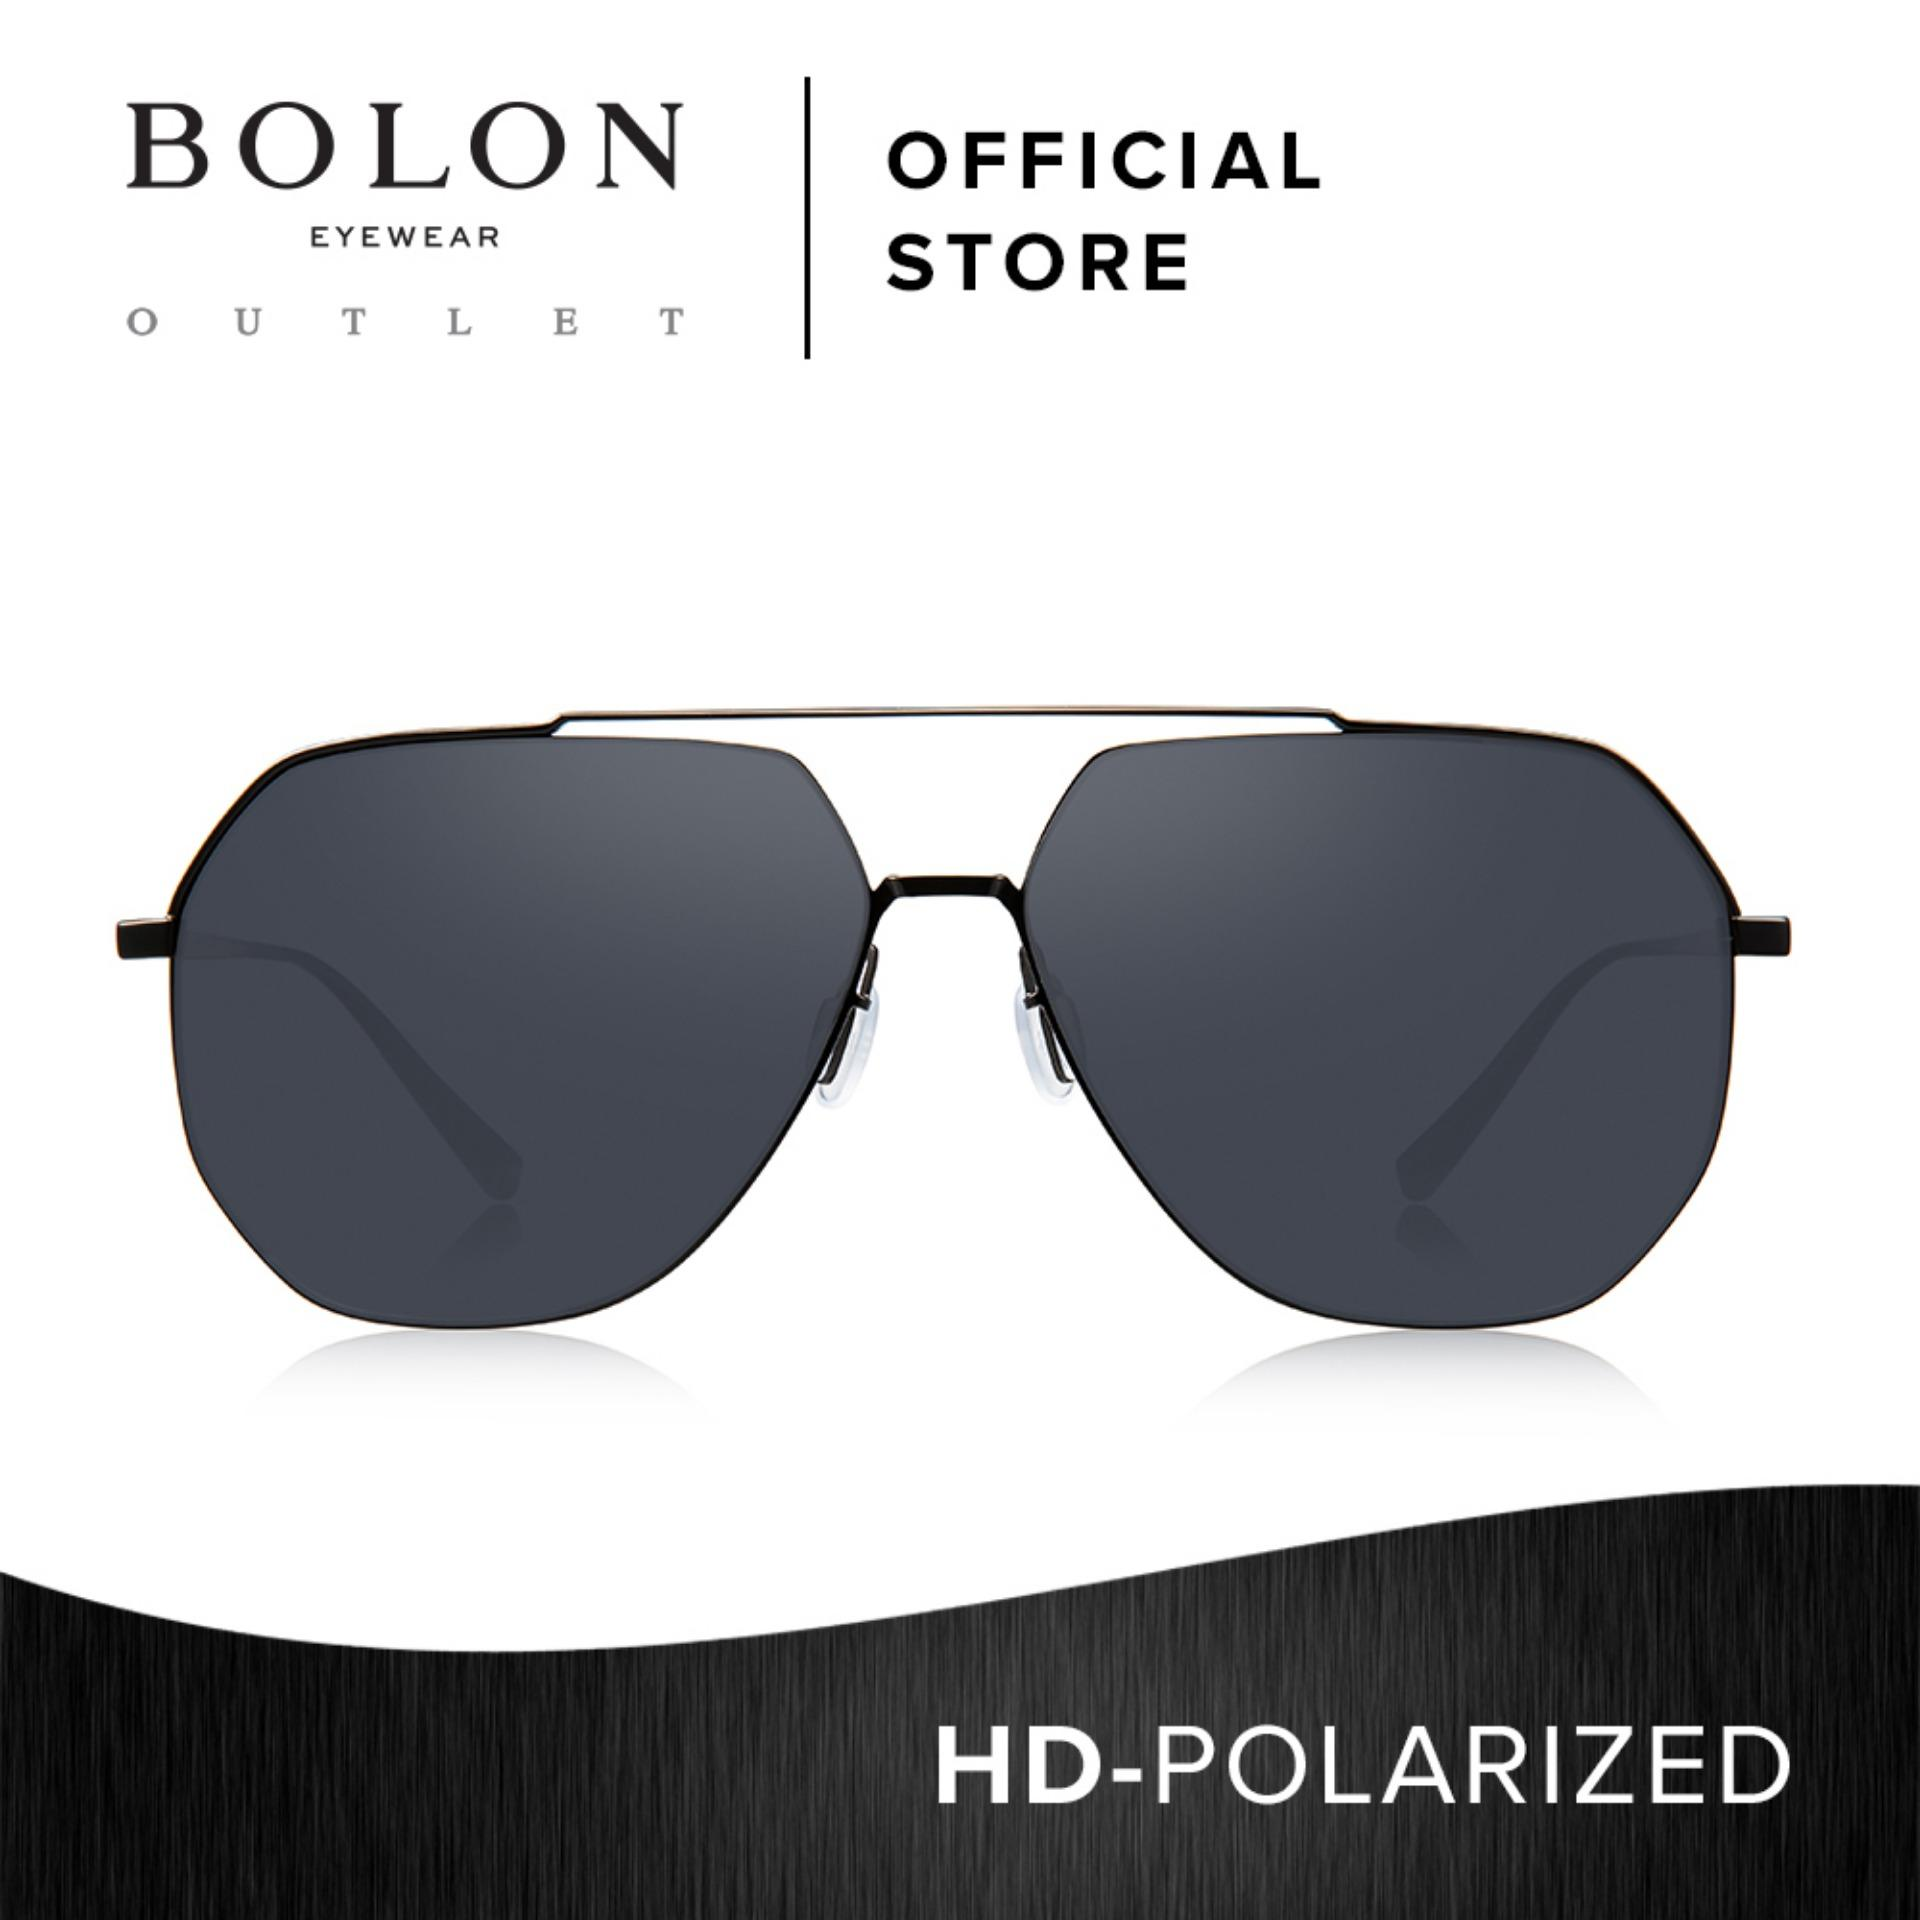 bcc9be523f0 BOLON Eyewear Unisex HD Polarized Aviator Sunglasses Babylon BL8009 Black